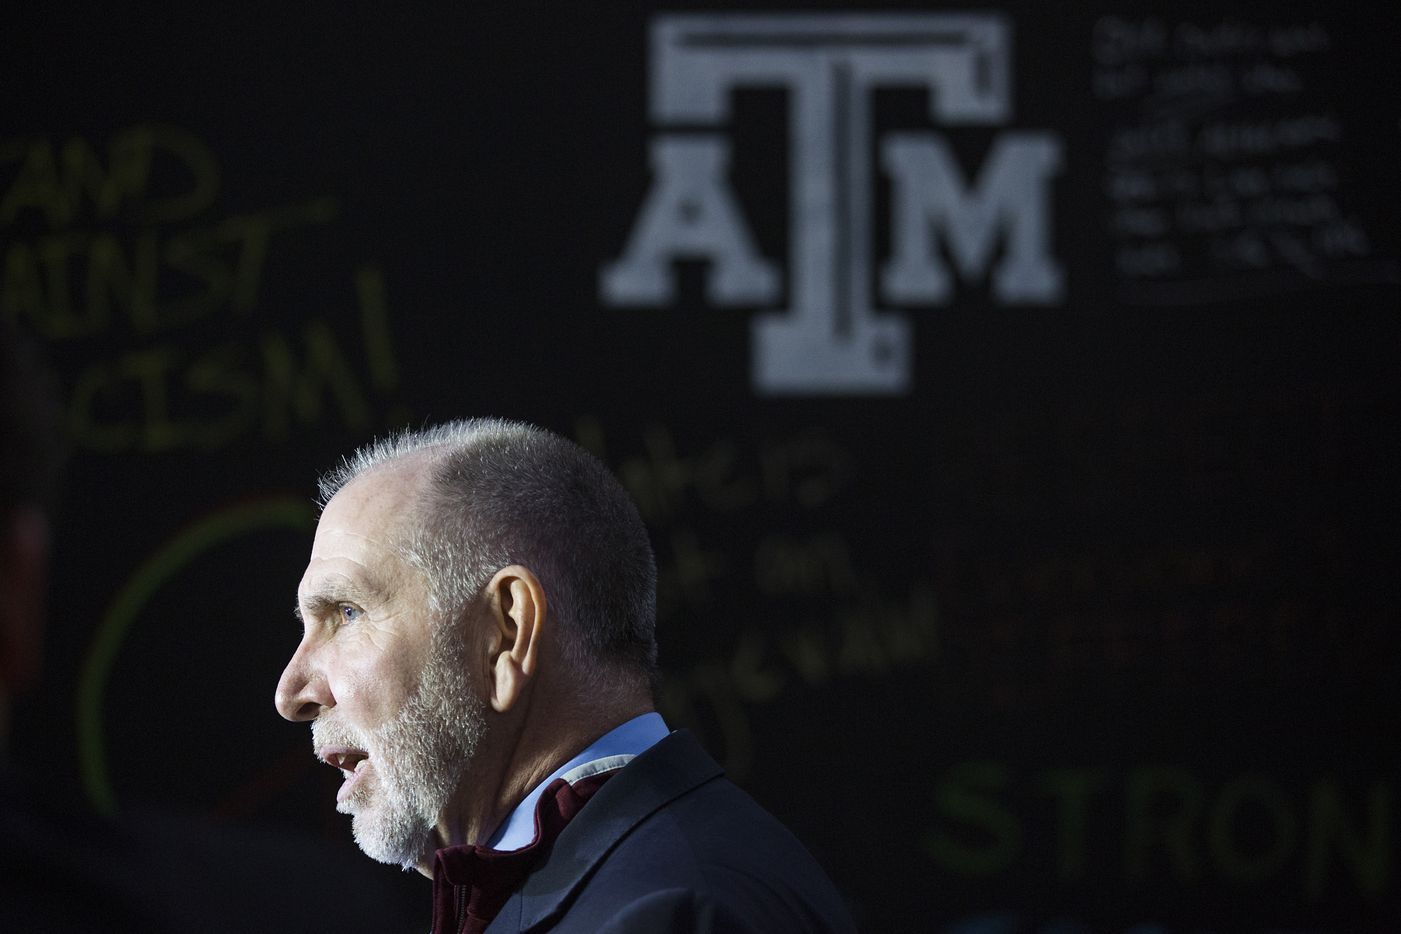 Michael K. Young, president of Texas A&M University, speaks to reporters before the Aggies United event at Kyle Field.